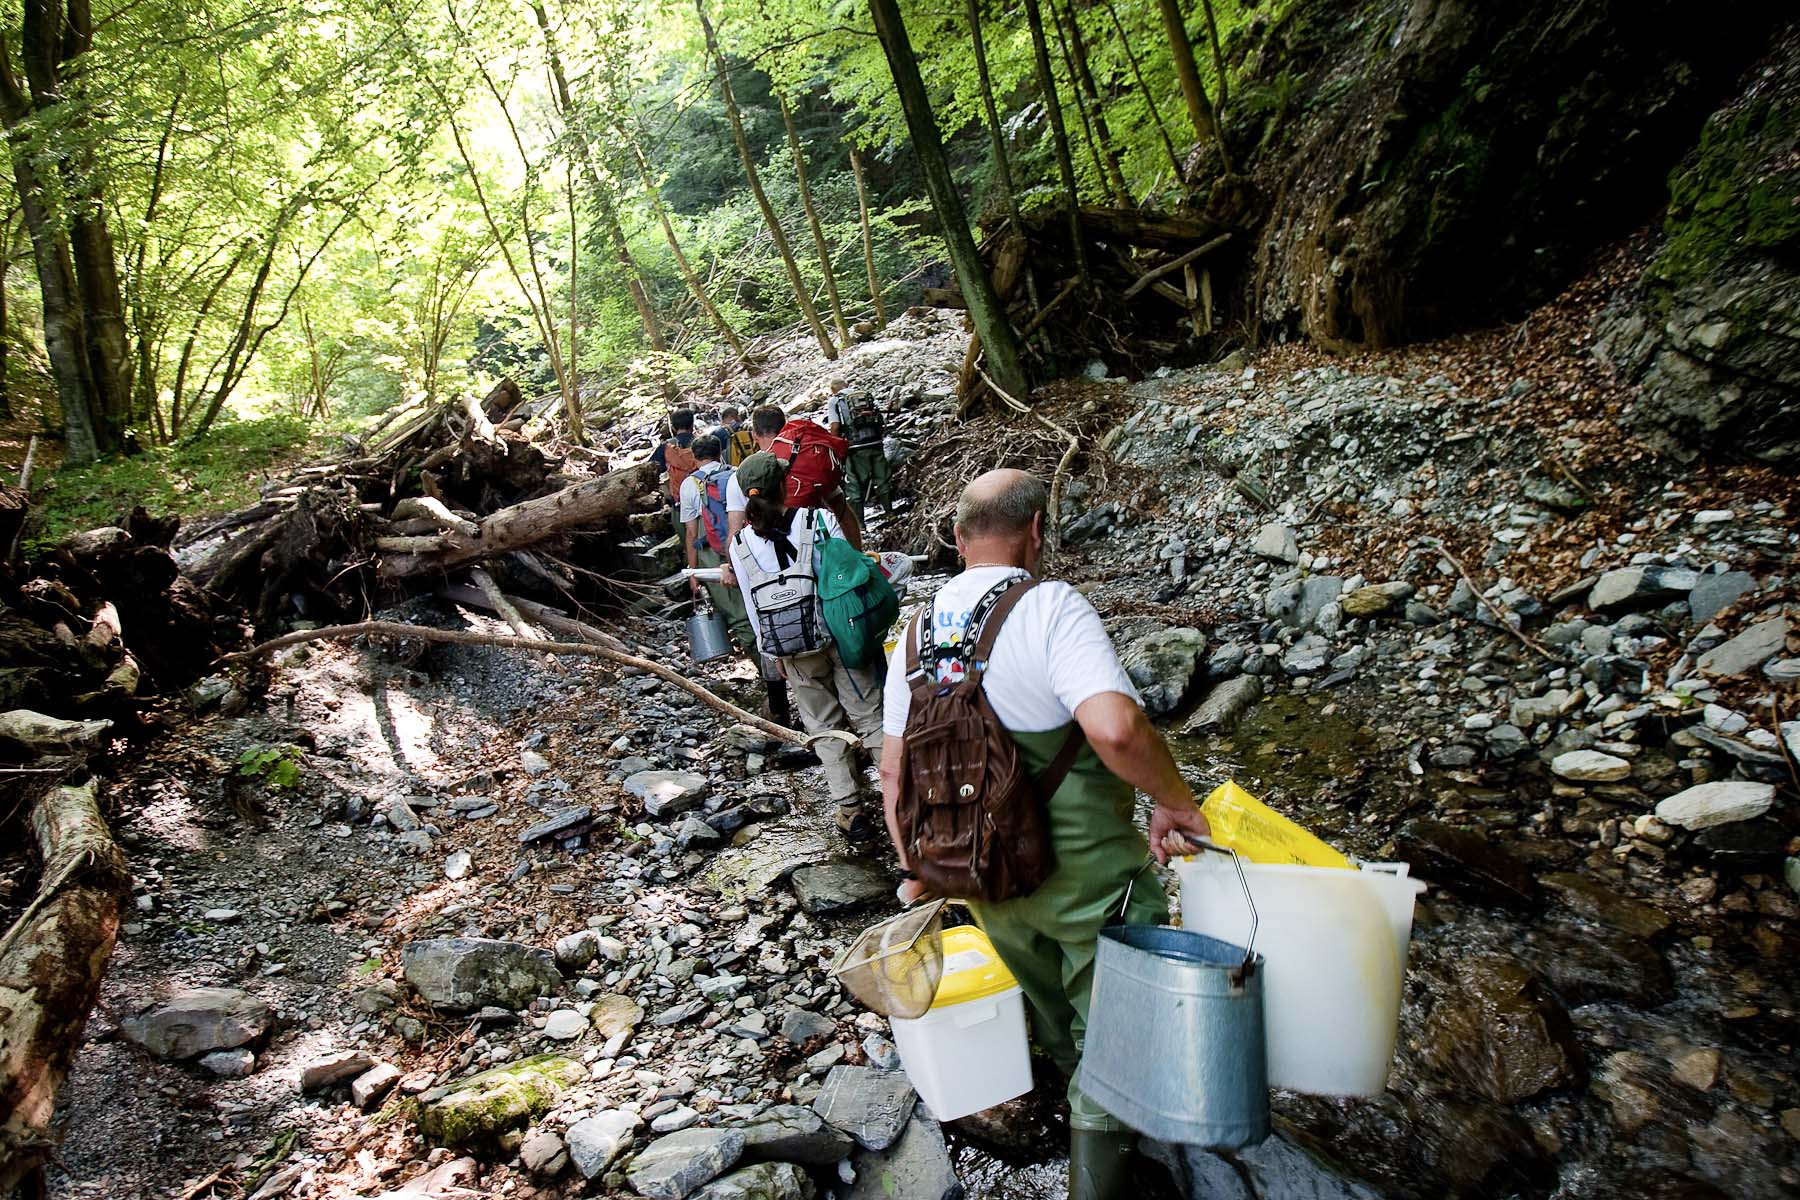 A team of fishkeepers, scientists and fishermen walks up a riverbed through a gorge littered by debree from a devastating flood months before. Monitoring of these streams runs twice a year for two weeks in at least seven difficult gorges.